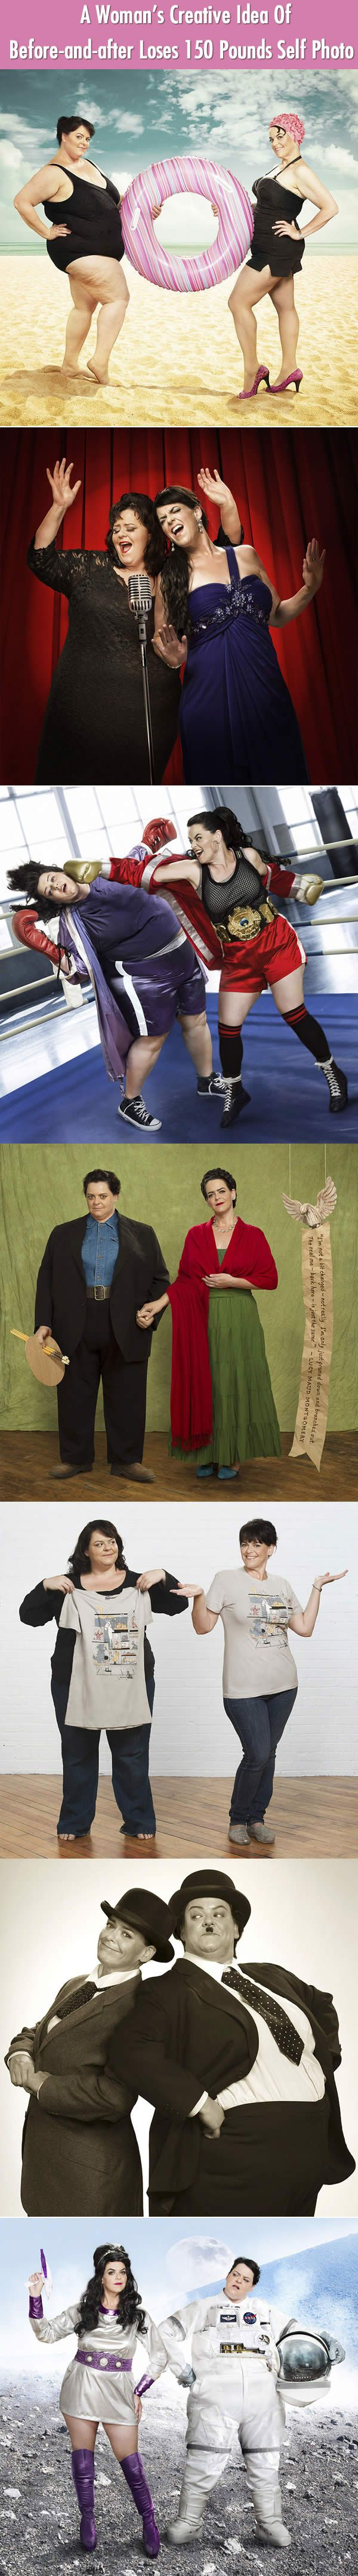 An Awesome Womans Creative Photos Of Before And After Lose 150 Pound Weight.